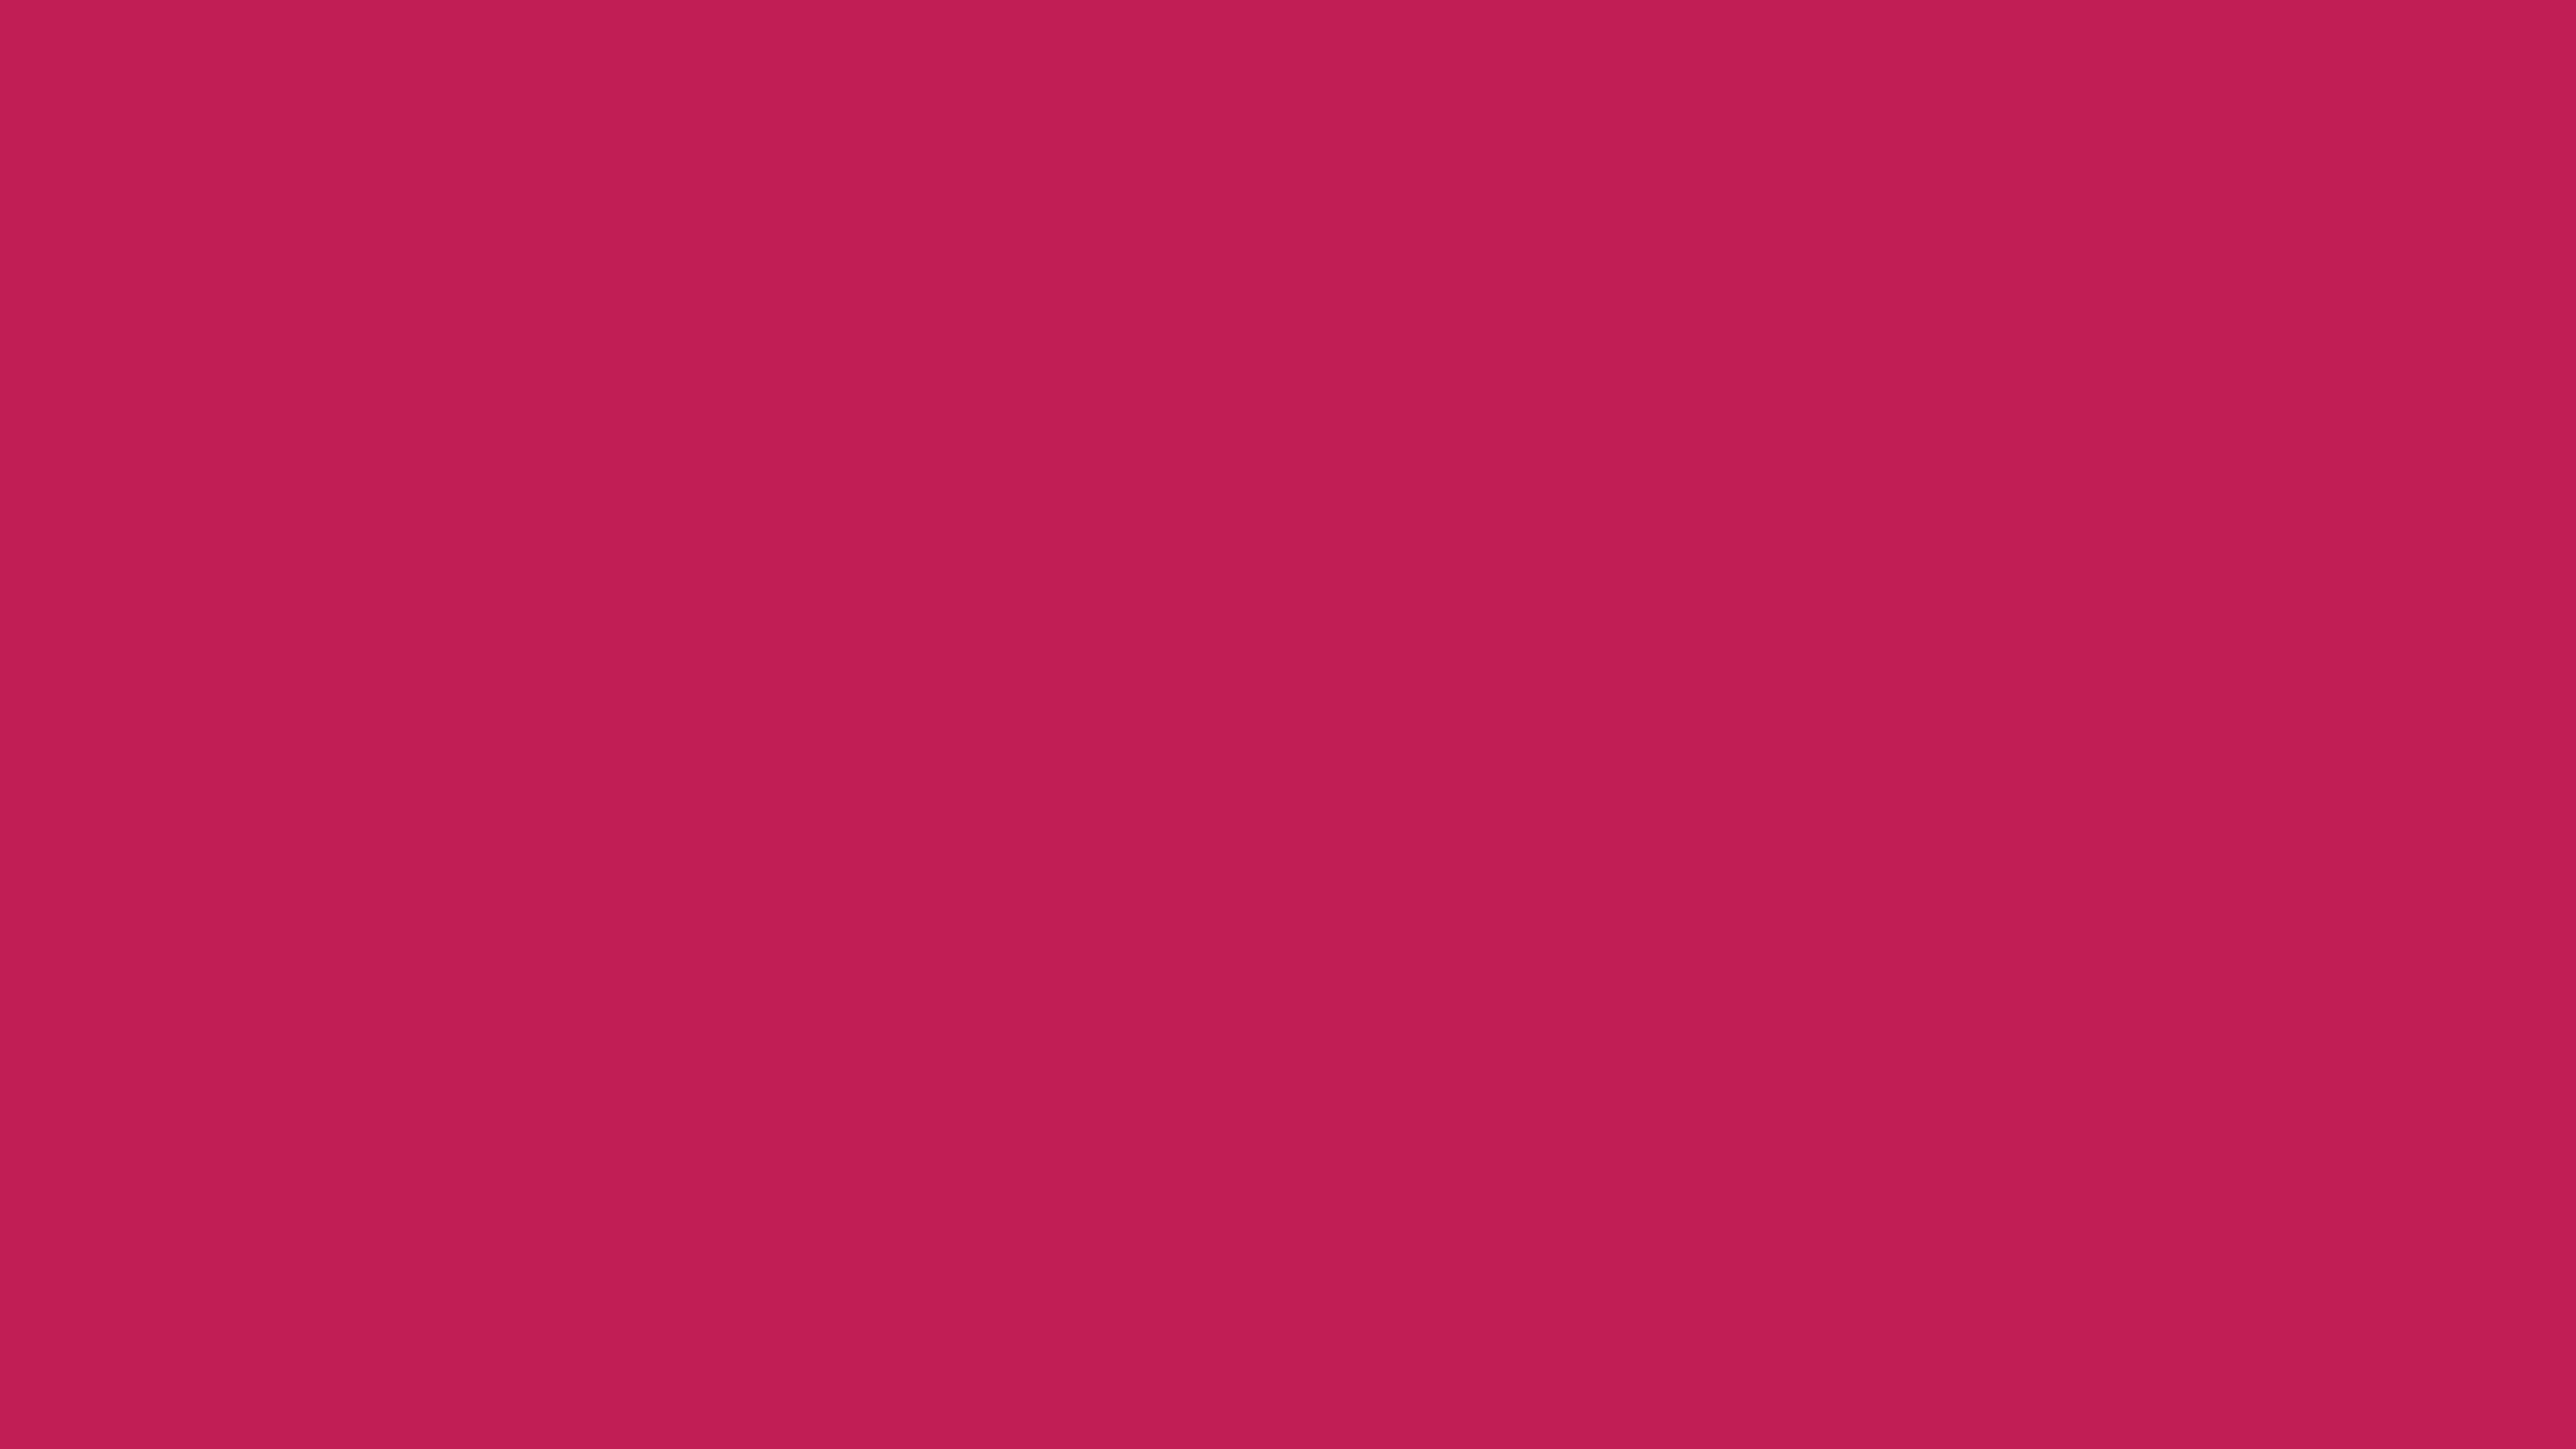 3840x2160 Rose Red Solid Color Background